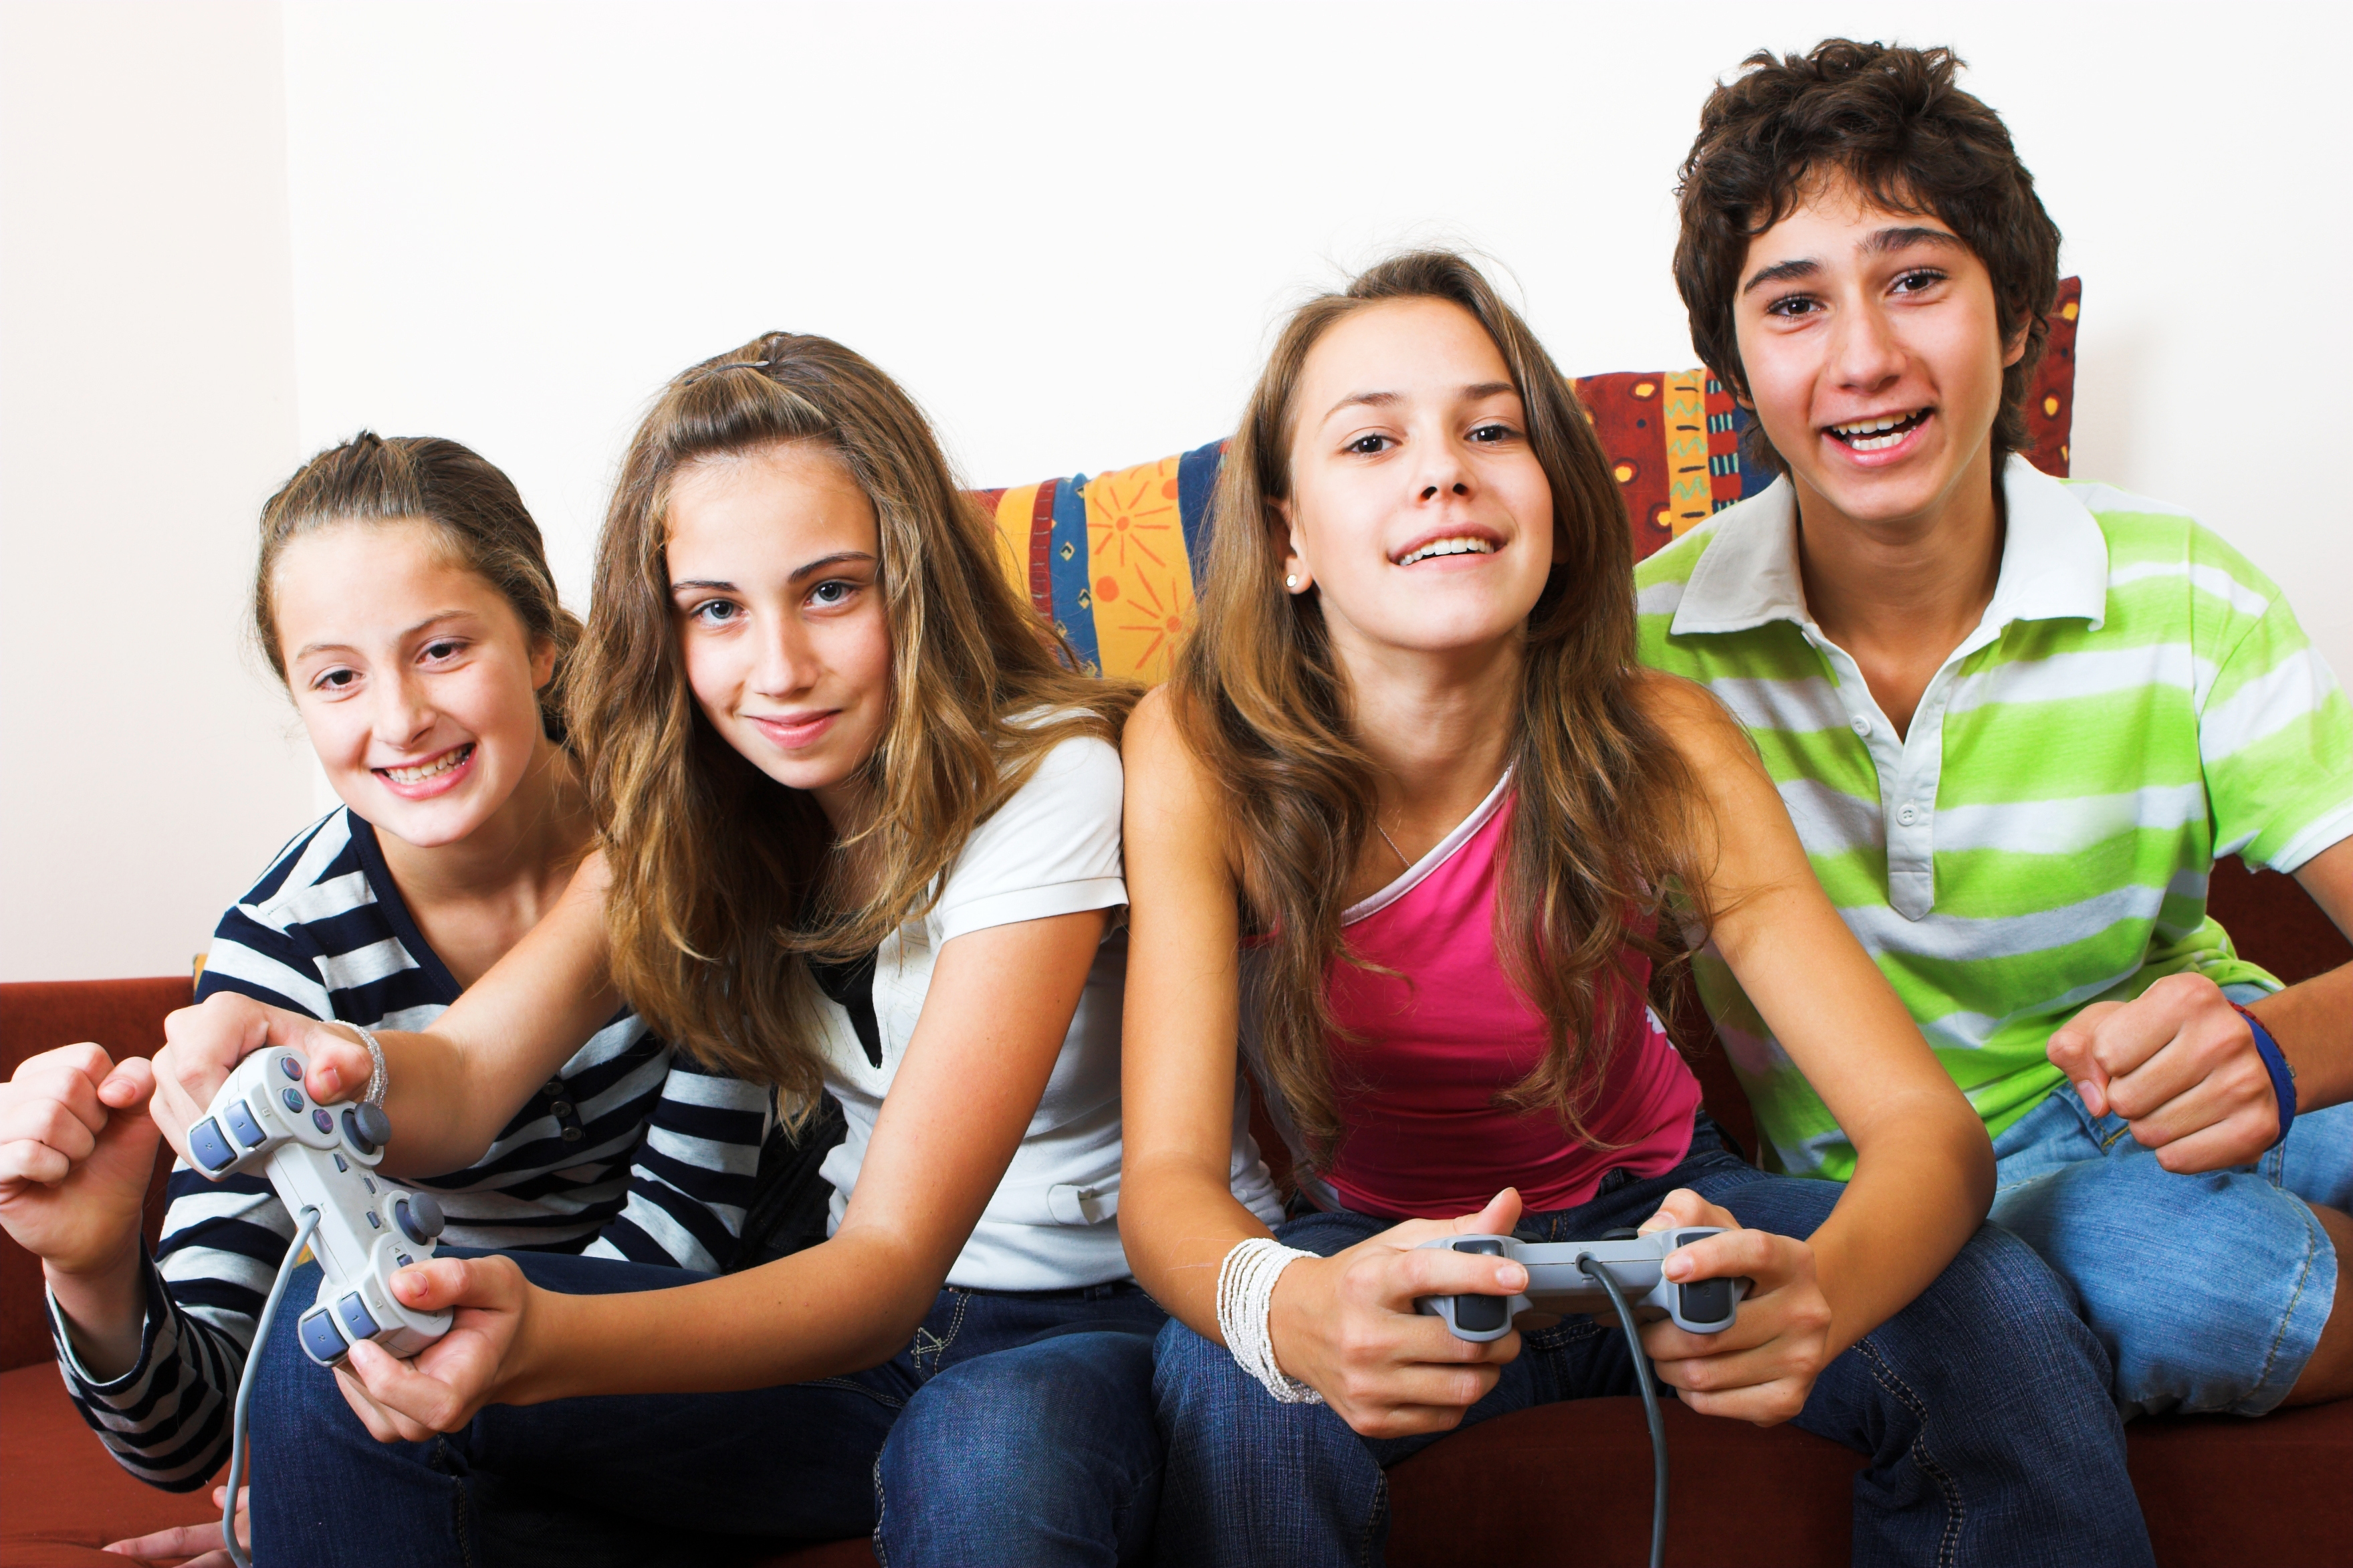 Video Games On Teenagers